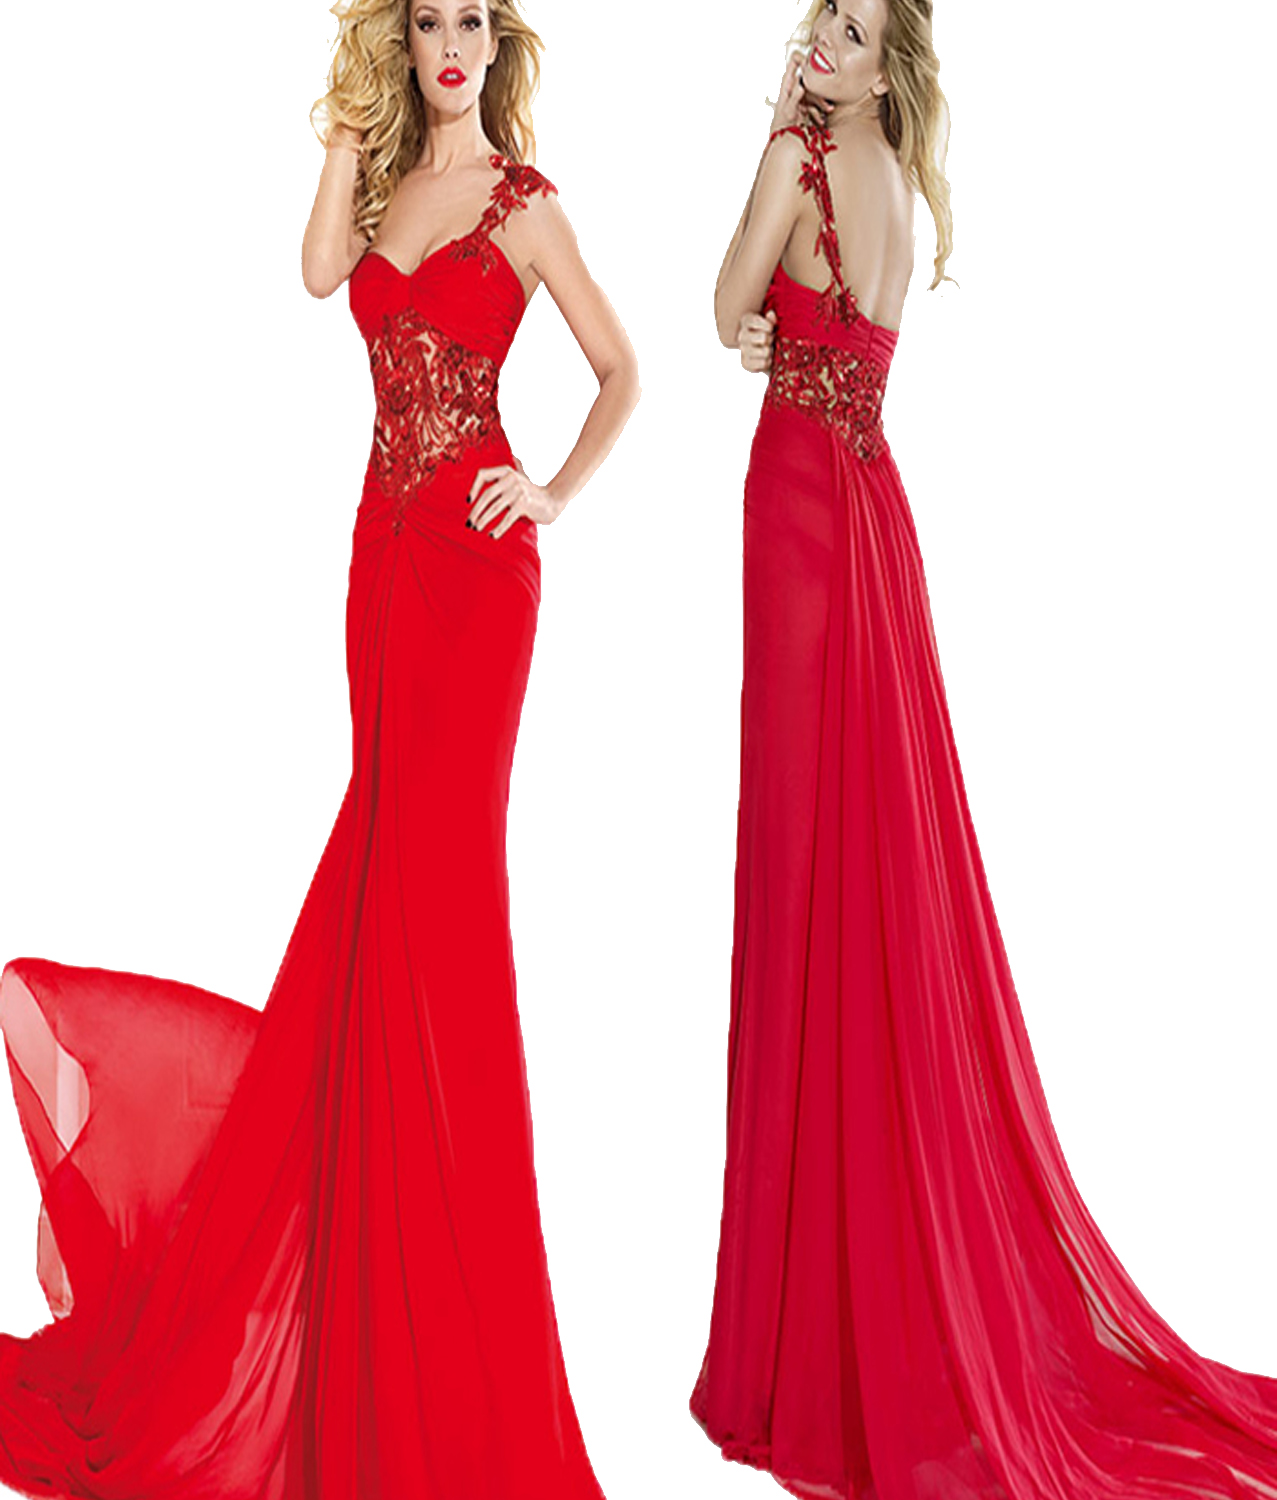 623371fc624 J174 Sexy One Shoulder Handmade Appliques Long Red Chiffon Prom Dresses, Hot  Red Homecoming Dresses